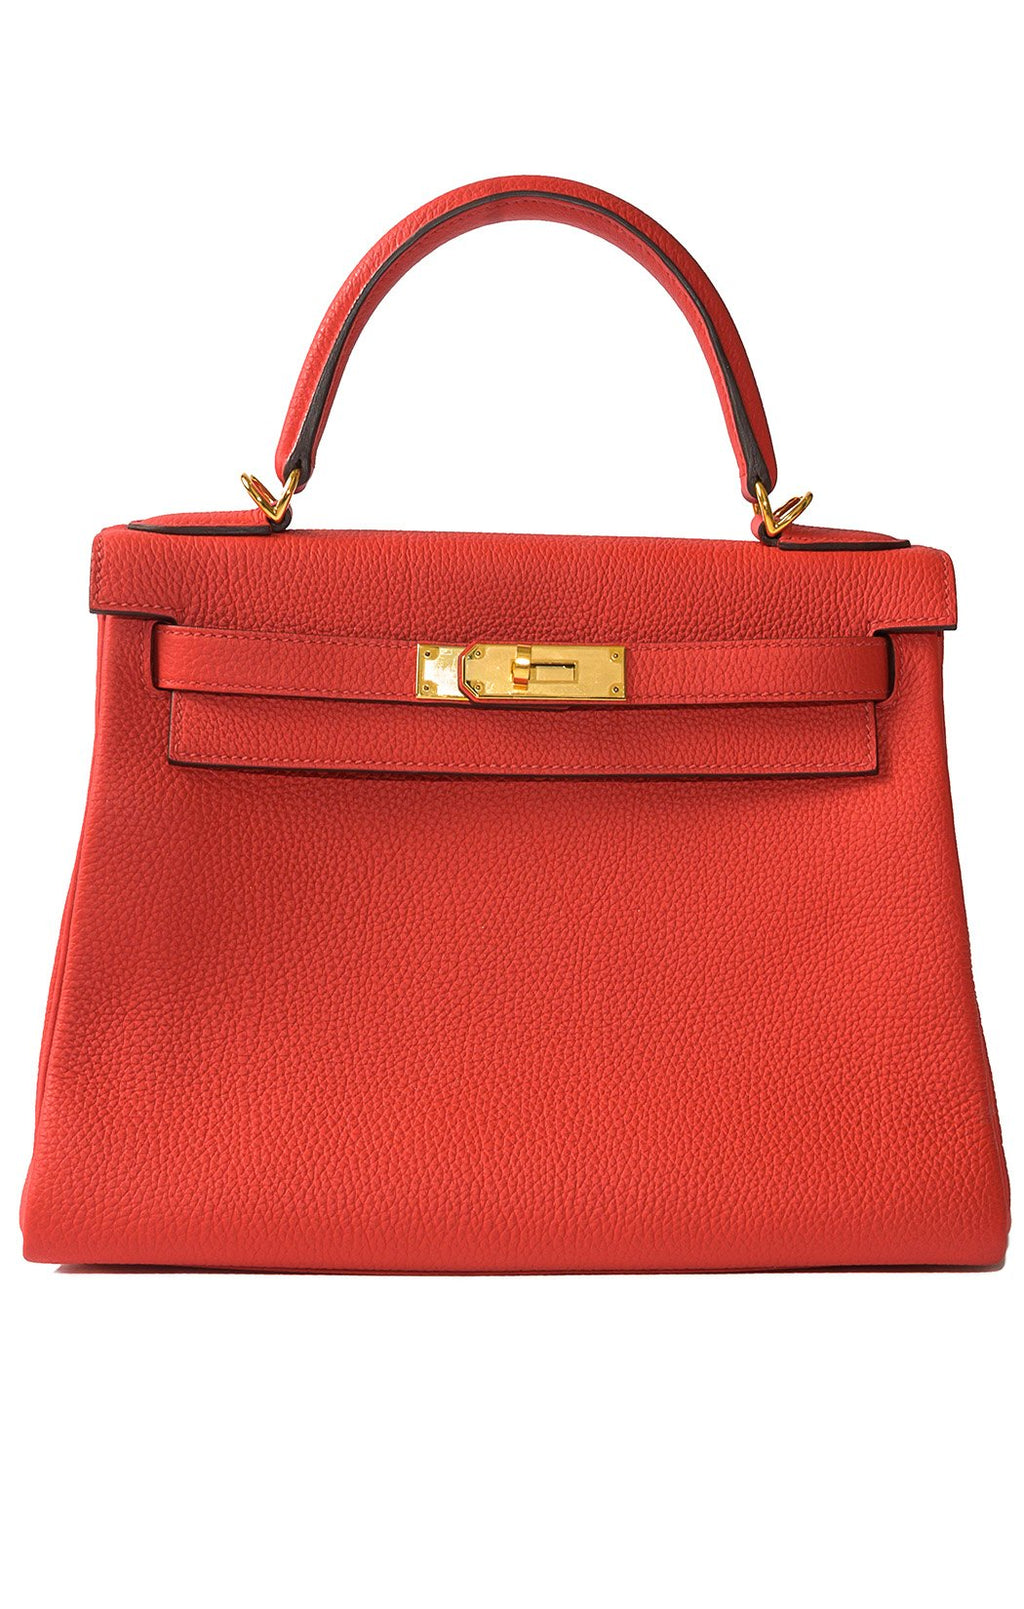 "Front view of HERMES KELLY Handbag Size: 10.5"" W x 8.25"" H x 4.75"" D"